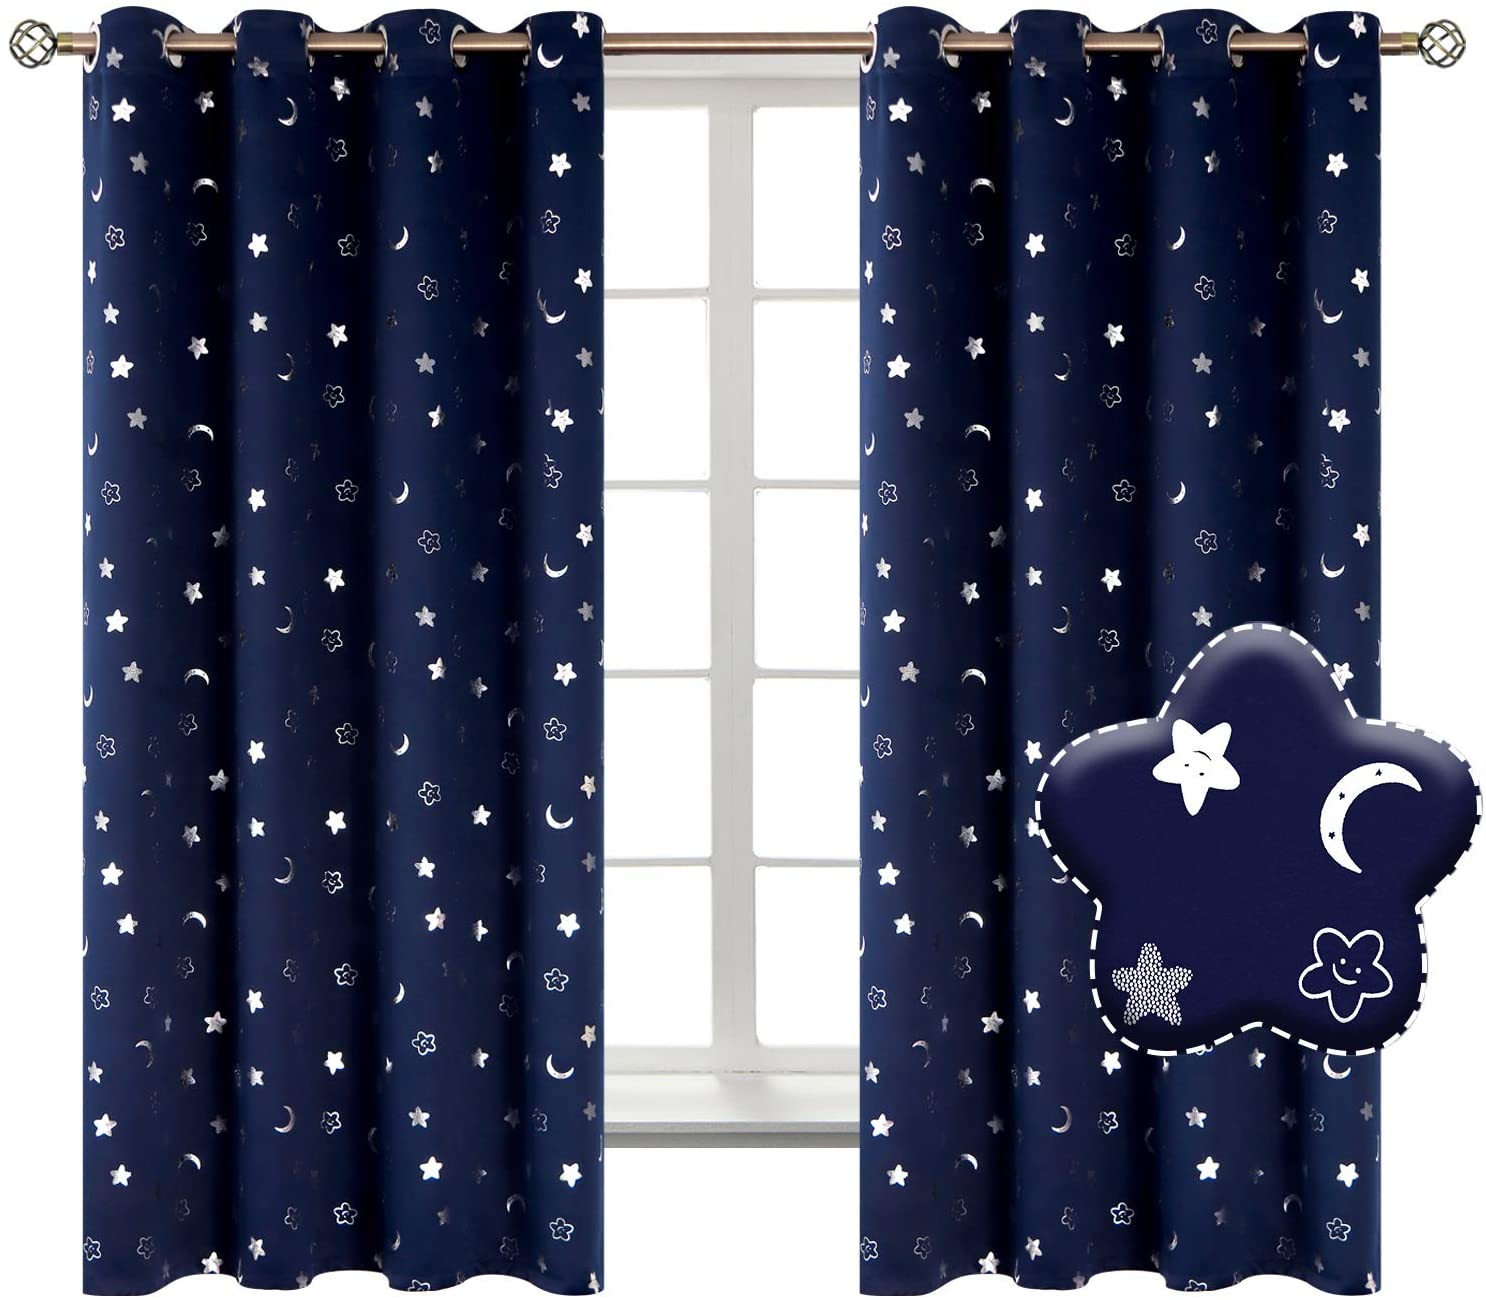 BGment Moon and Stars Blackout Curtains for Boys Bedroom, Grommet Thermal Insulated Room Darkening Printed Kids Curtains, 2 Panels of 52 x 63 Inch, Navy